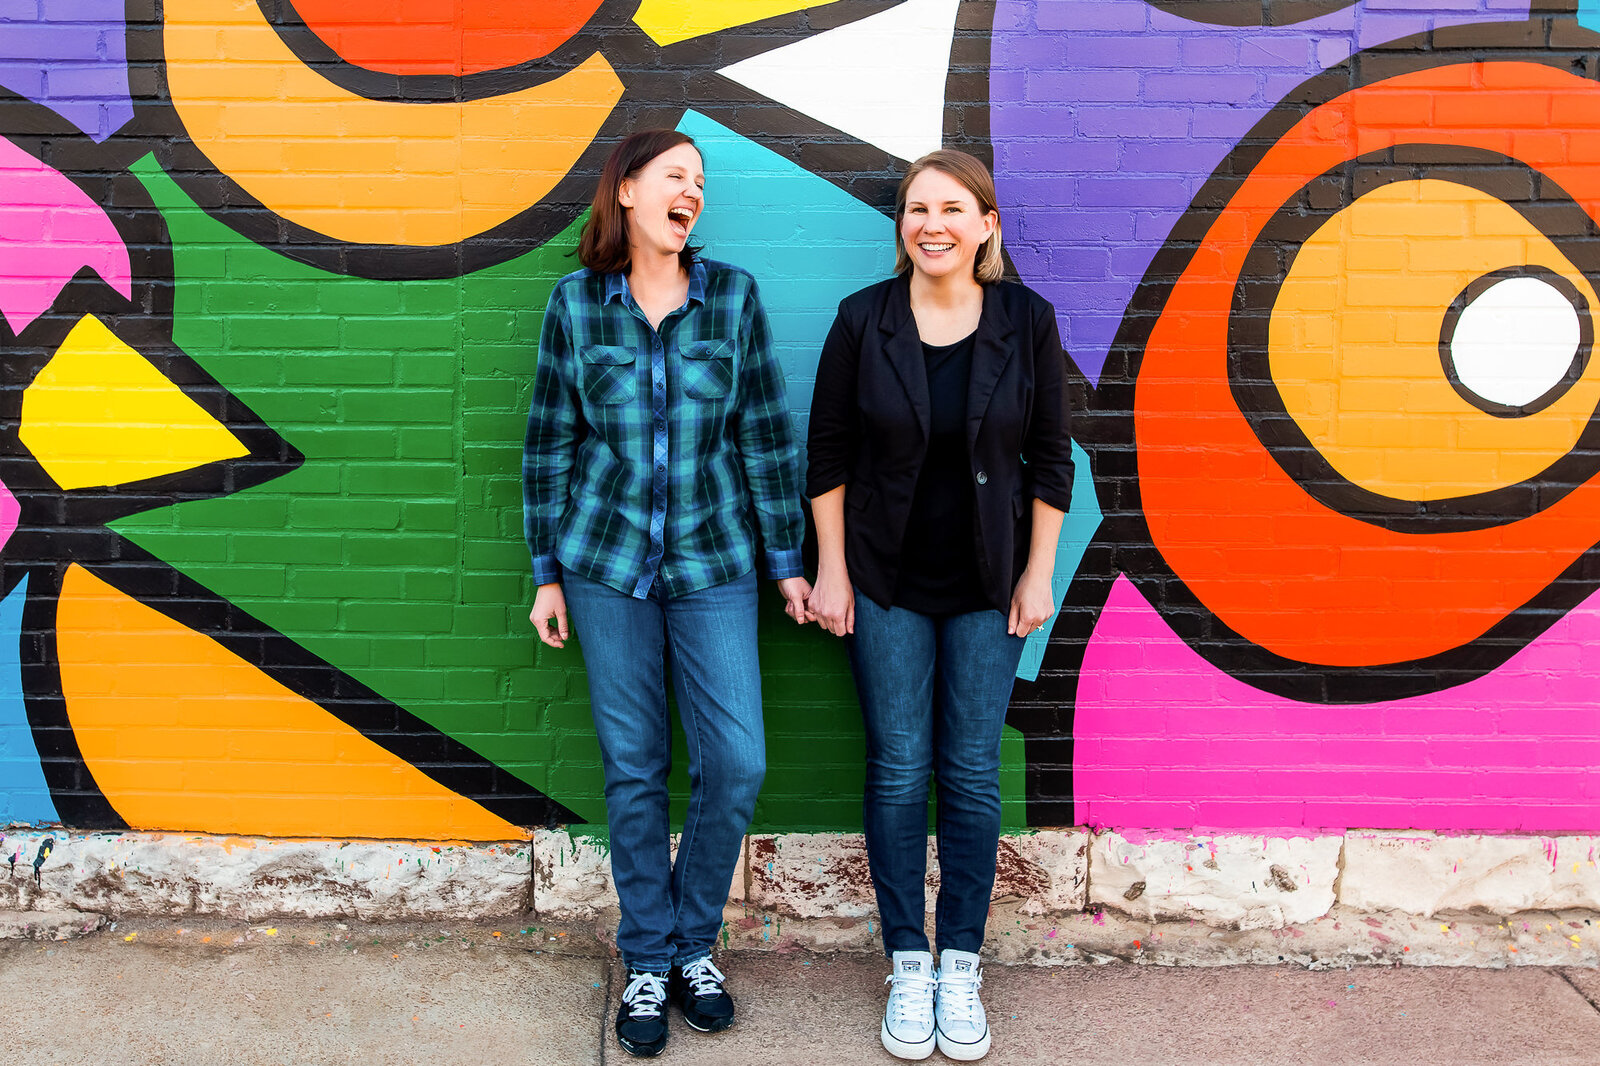 LGBT engagement photo session with a lesbian couple in front of a colorful mural The Grove in St. Loui